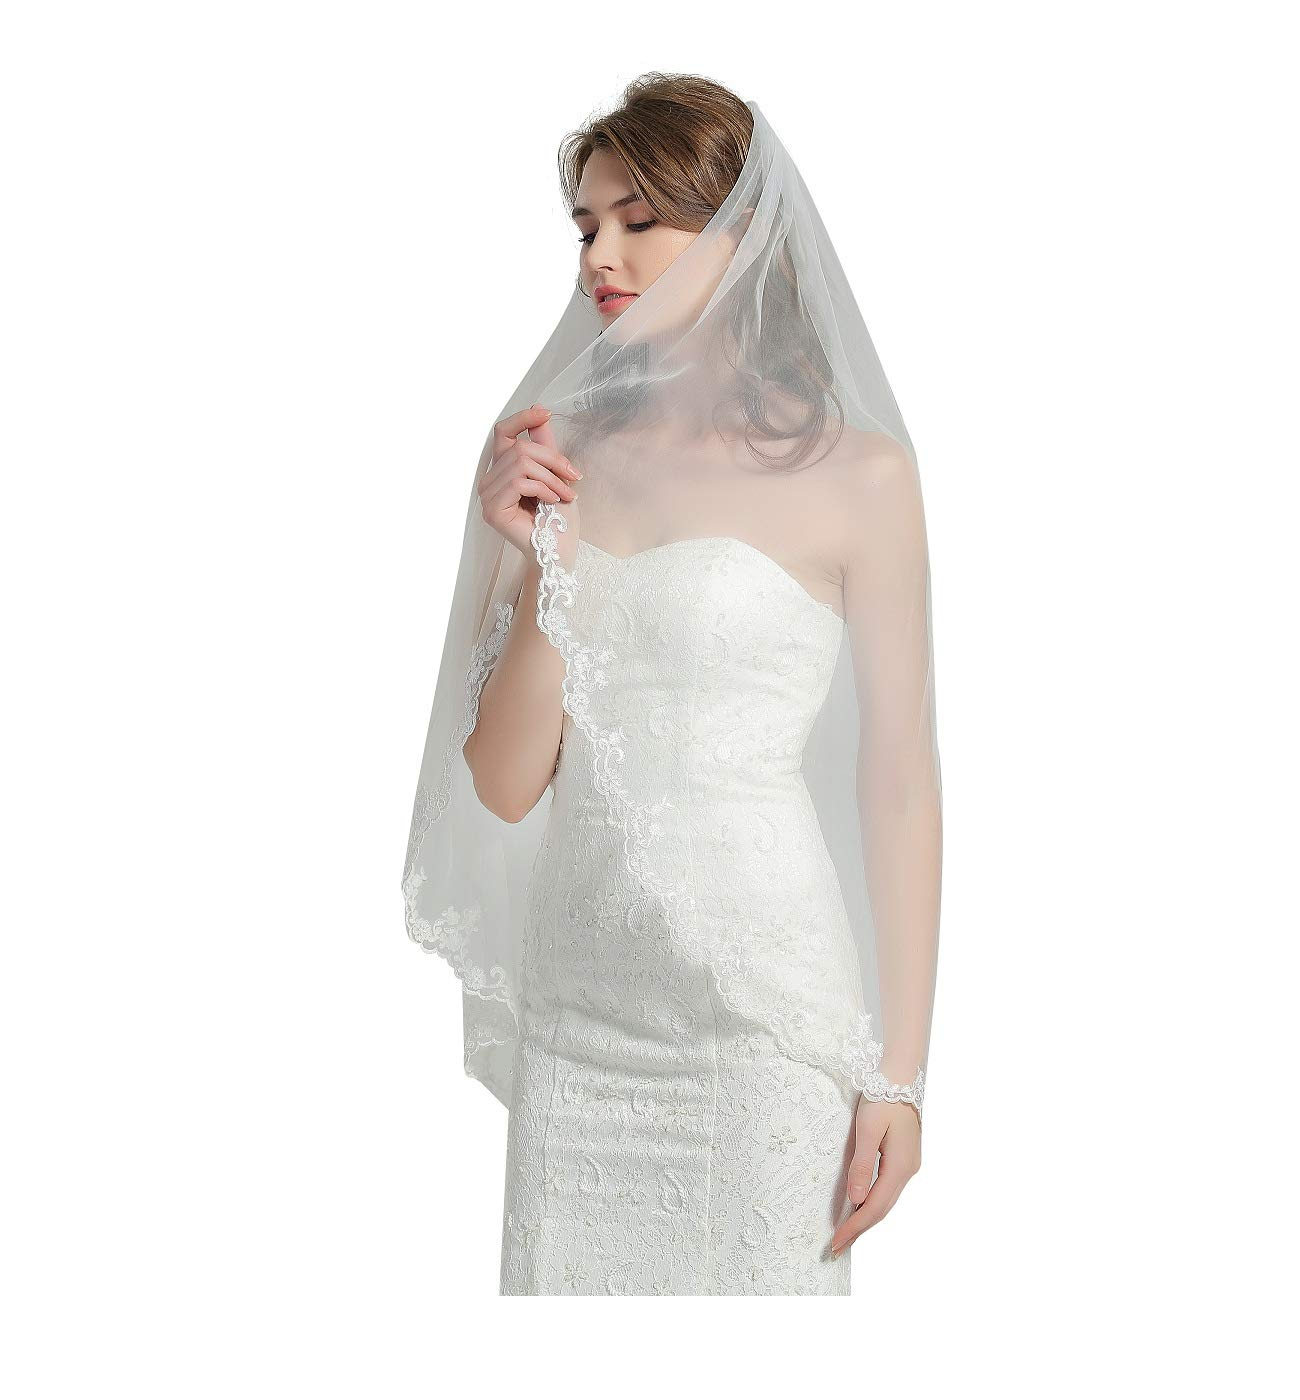 Wedding Bridal Veil with Comb 1 Tier Lace Applique Edge Fingertip Length 41'' V84 Ivory